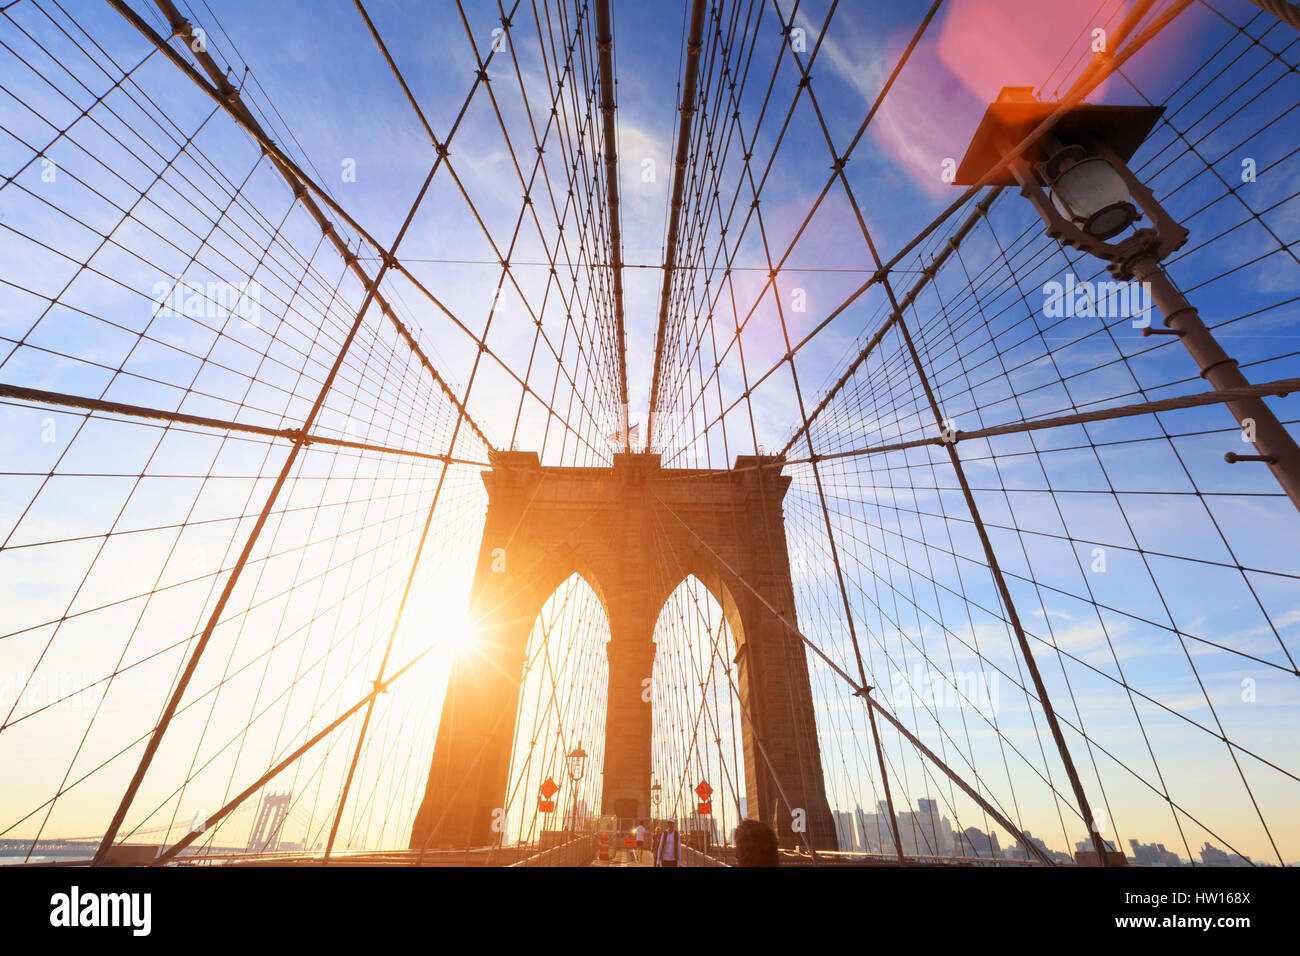 USA, New York, New York City, Brooklyn Bridge - Stock Image